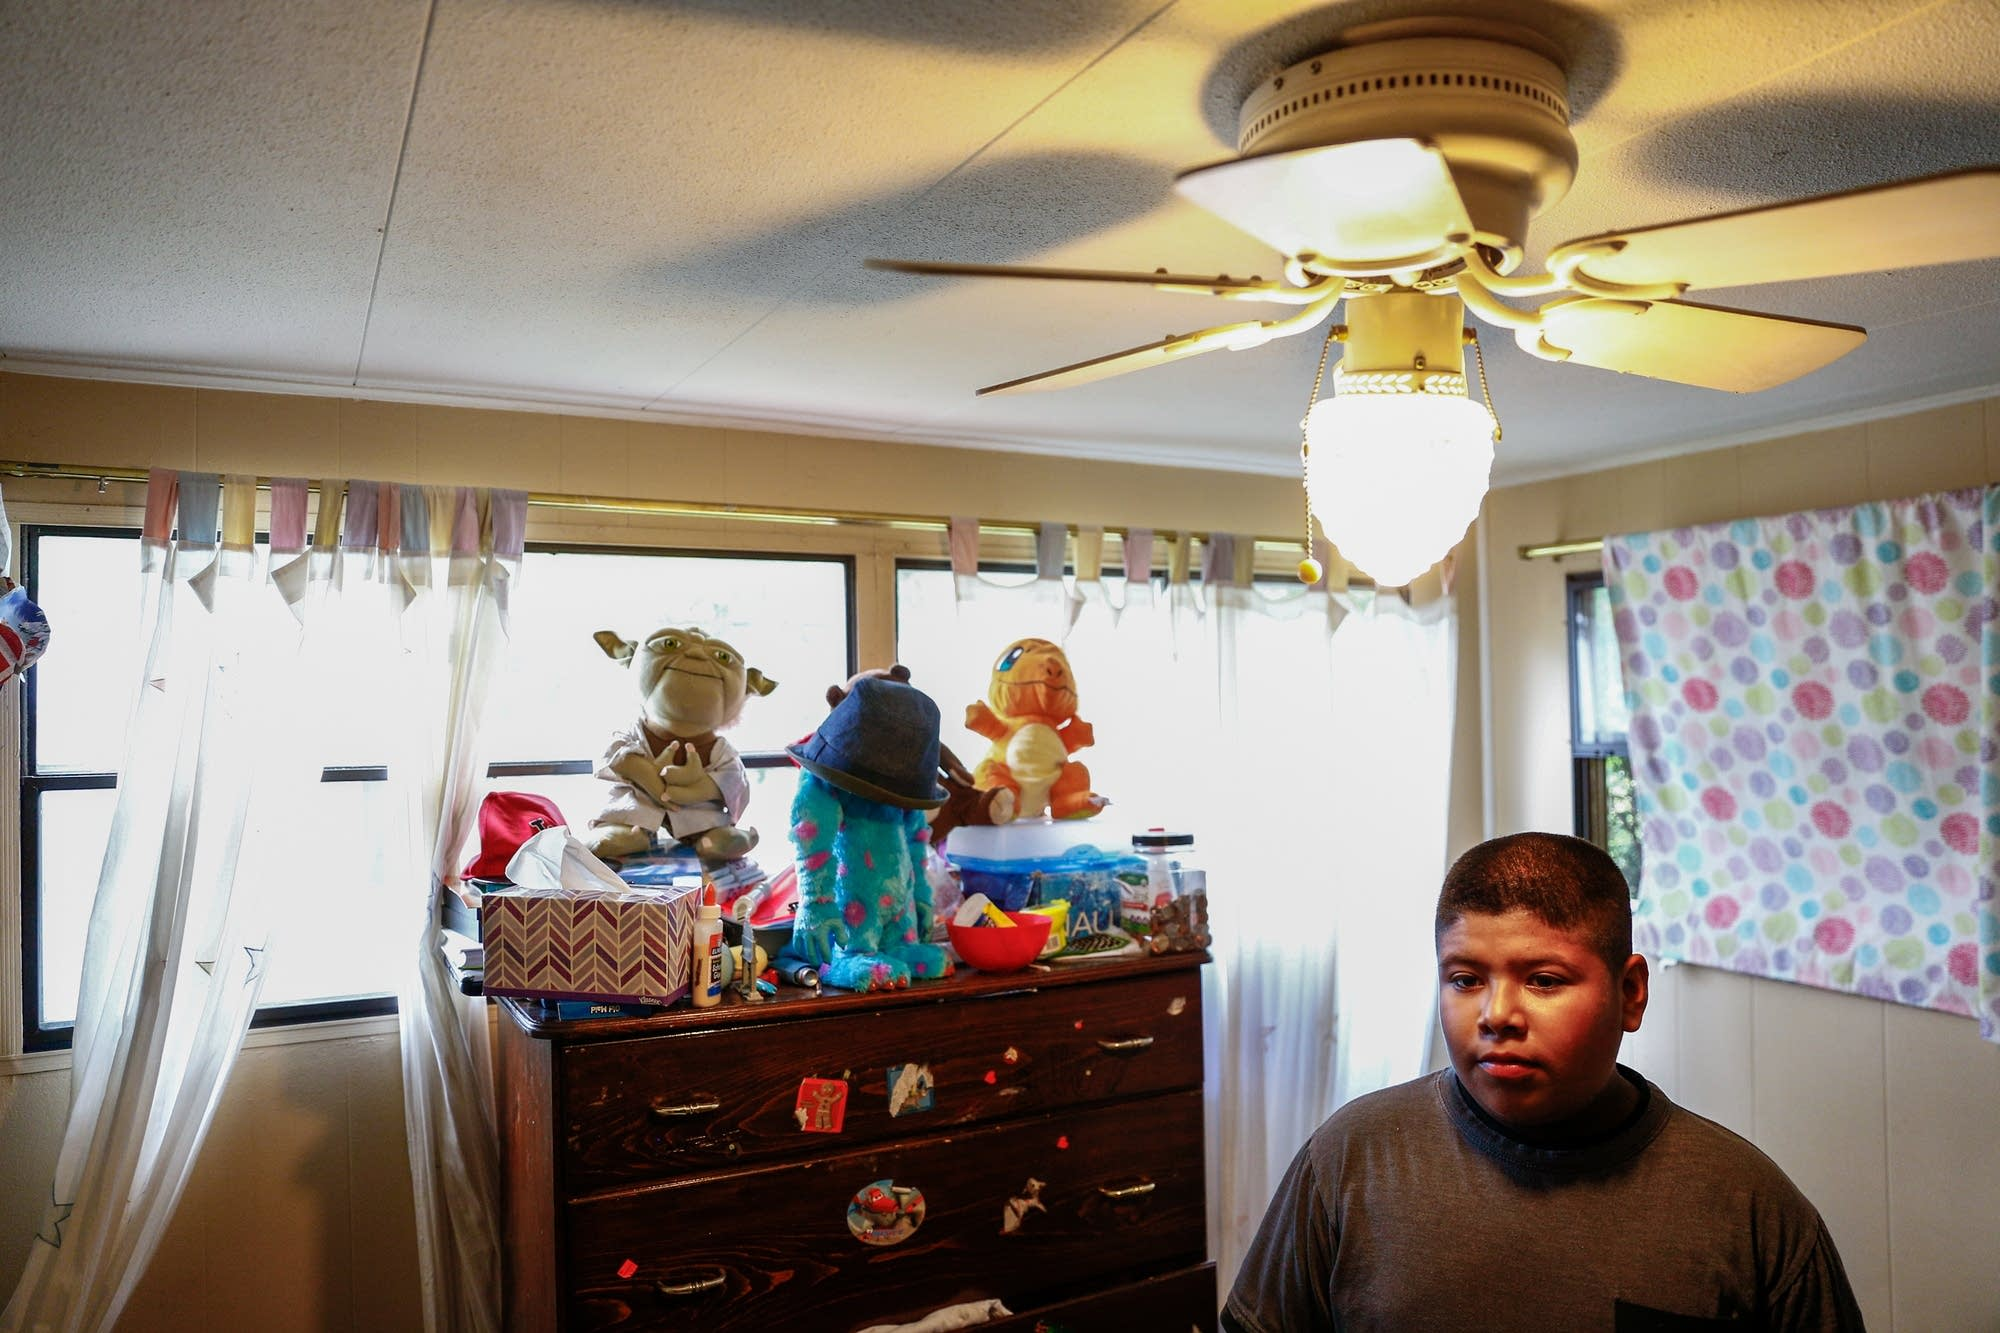 Elvy Rosendo stands in his room.